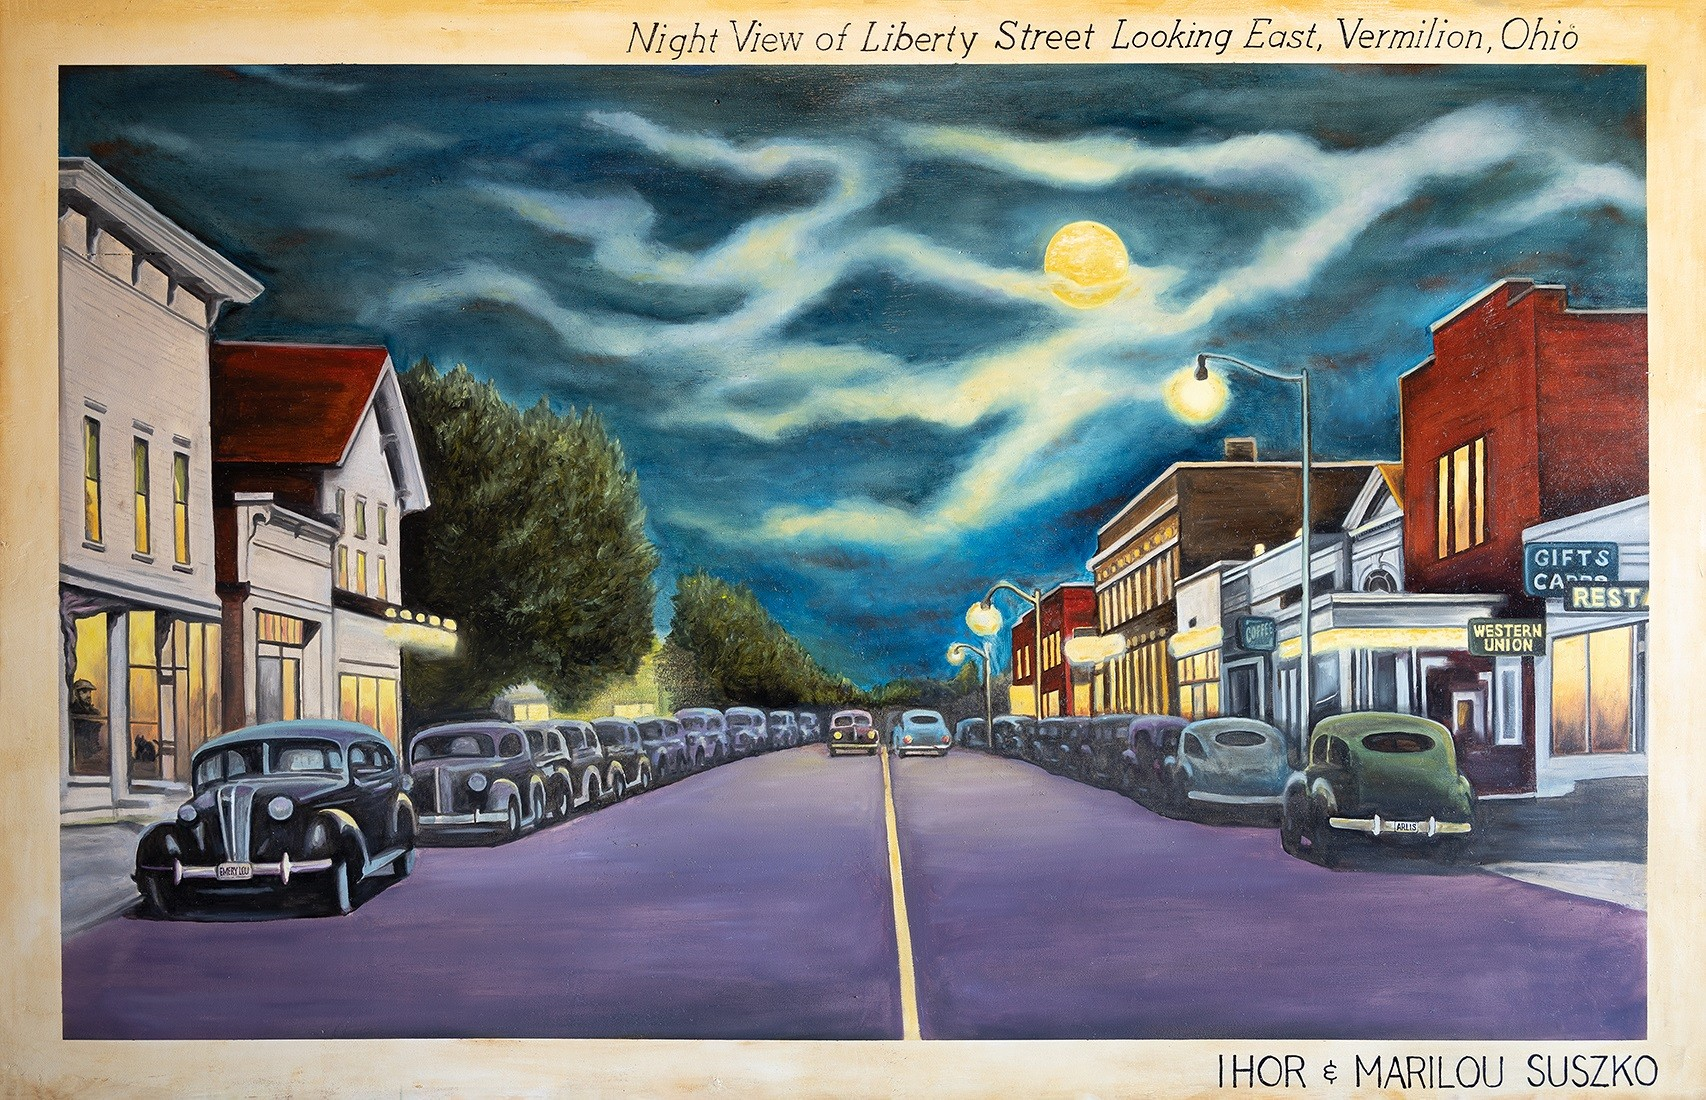 """""""A Busy Day on the Lagoons"""" is one of the views featured in Public Art Vermilion's award-winning Postcard Project, which features 15 mural-sized postcards of nostalgic scenes of Vermilion, Ohio. (Submitted photo)"""